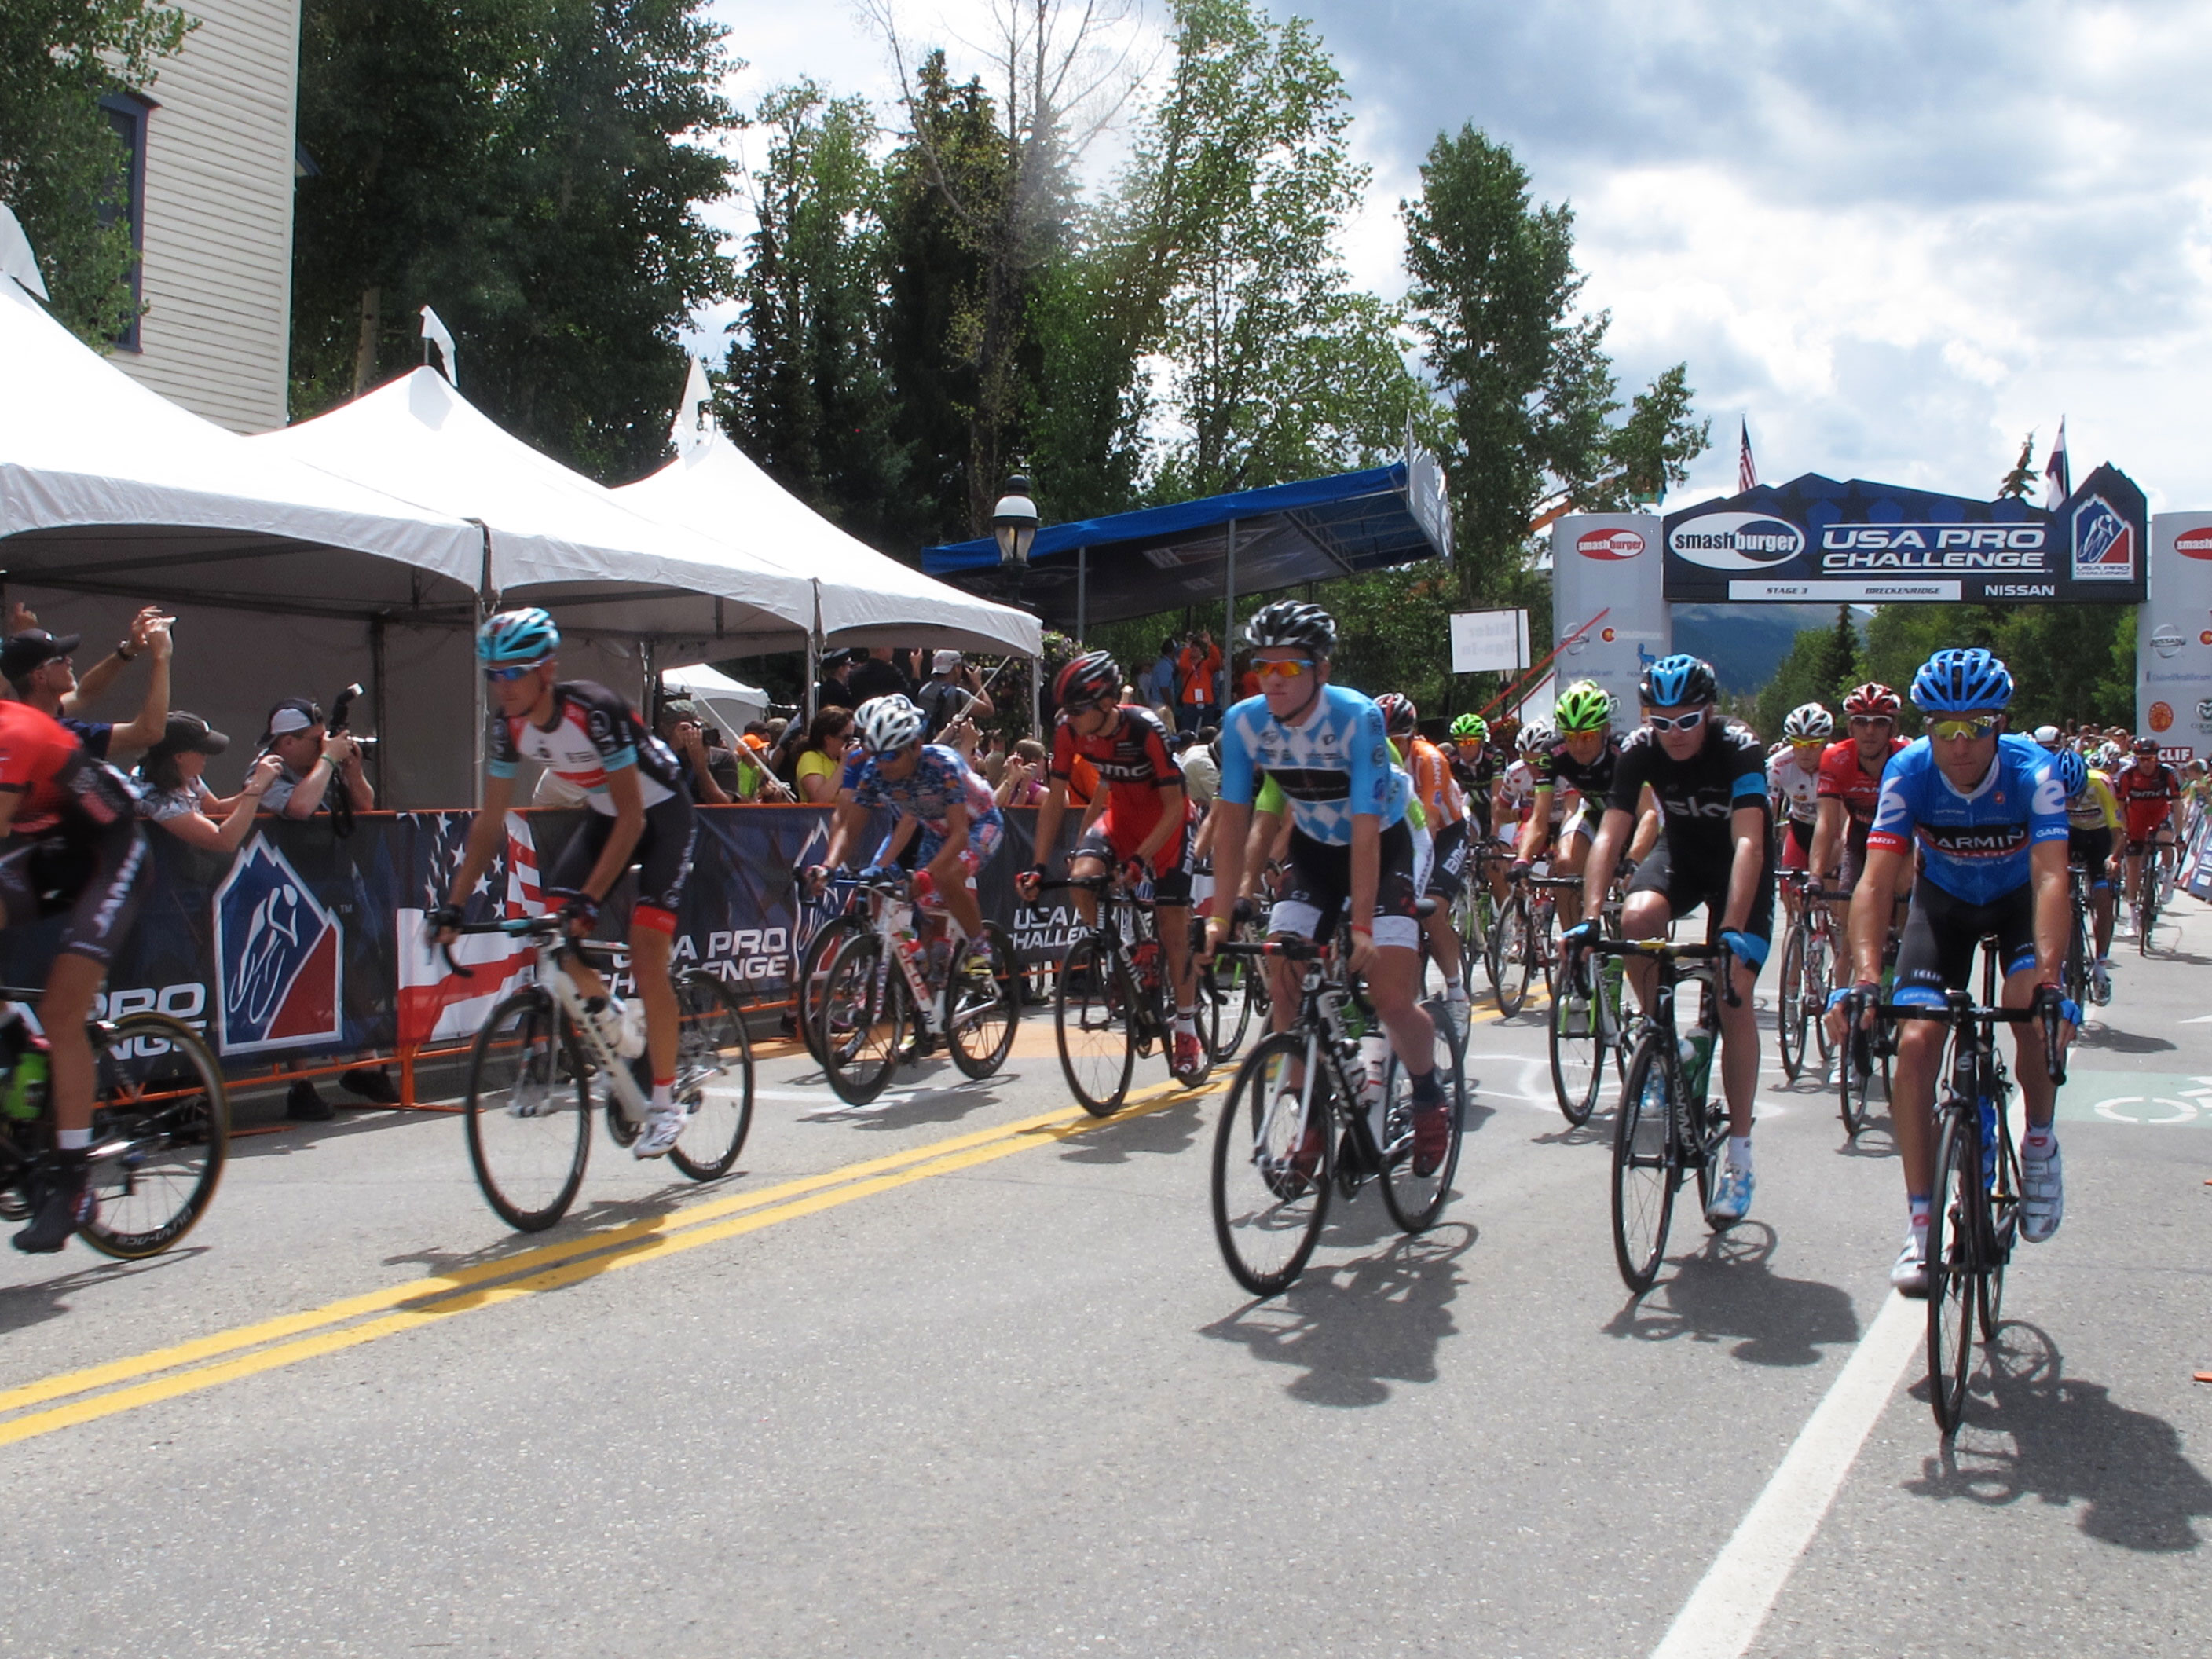 Stage 3 begins in Breckenridge